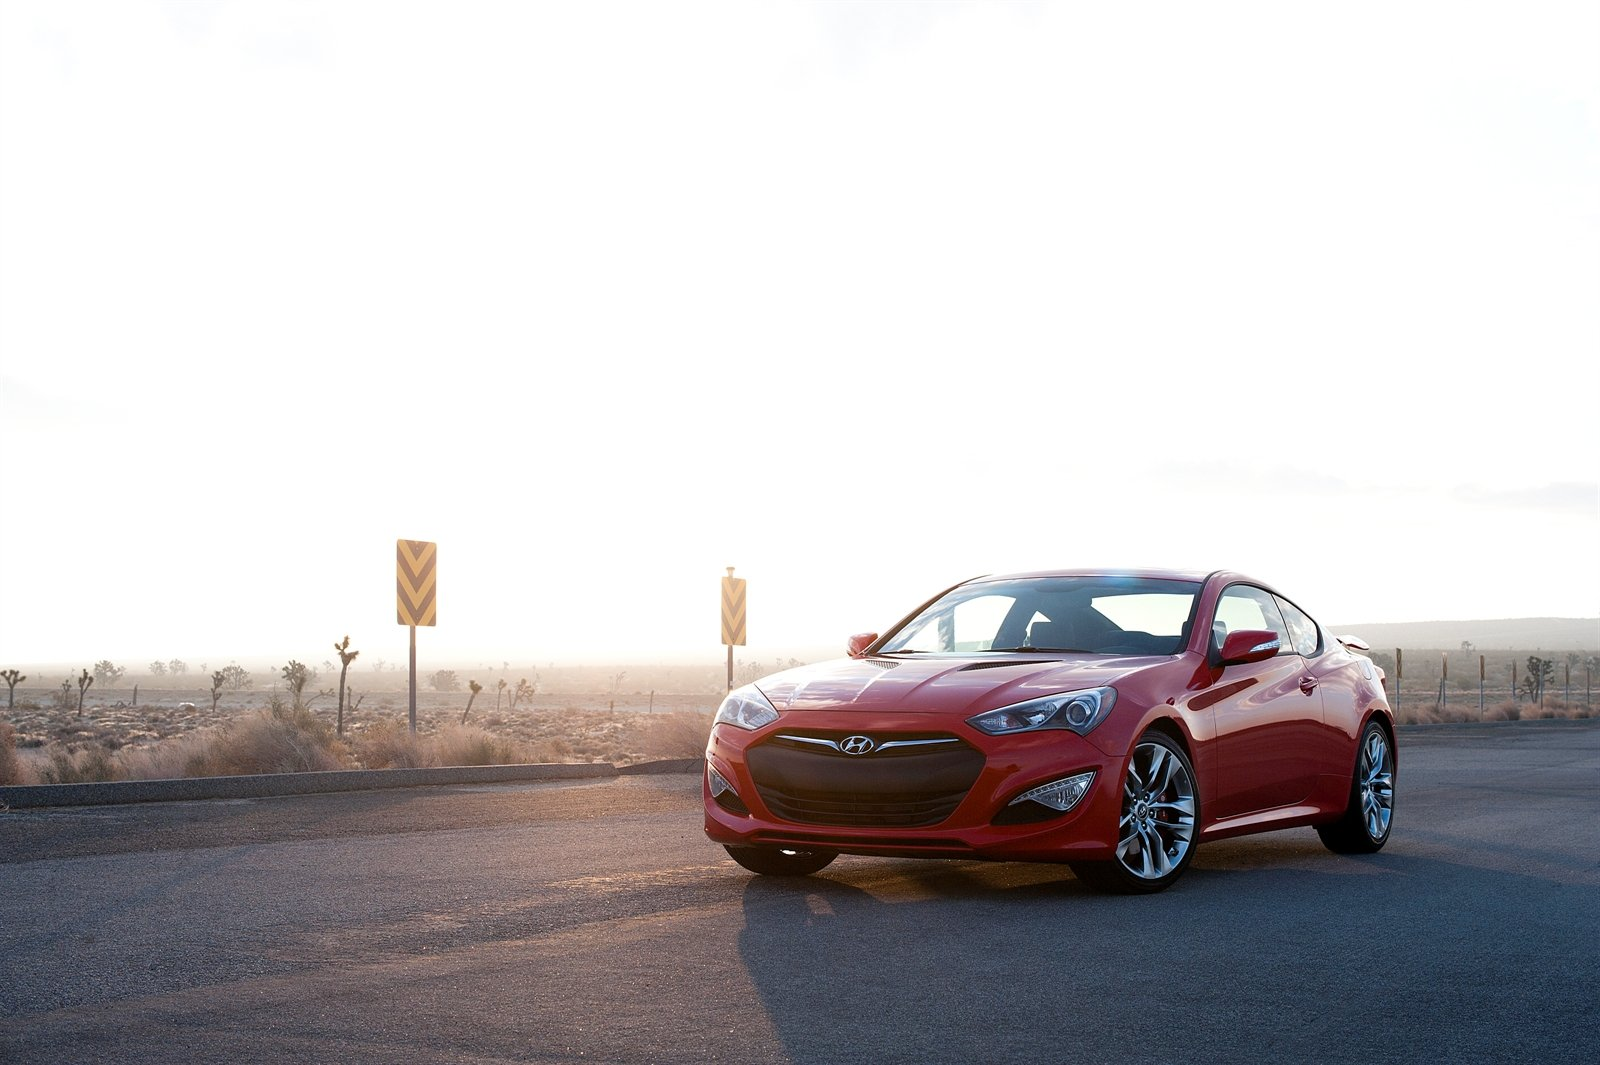 Genesis Coupe Photos Courtesy Of Hyundai. Comparison Photos By The Author.